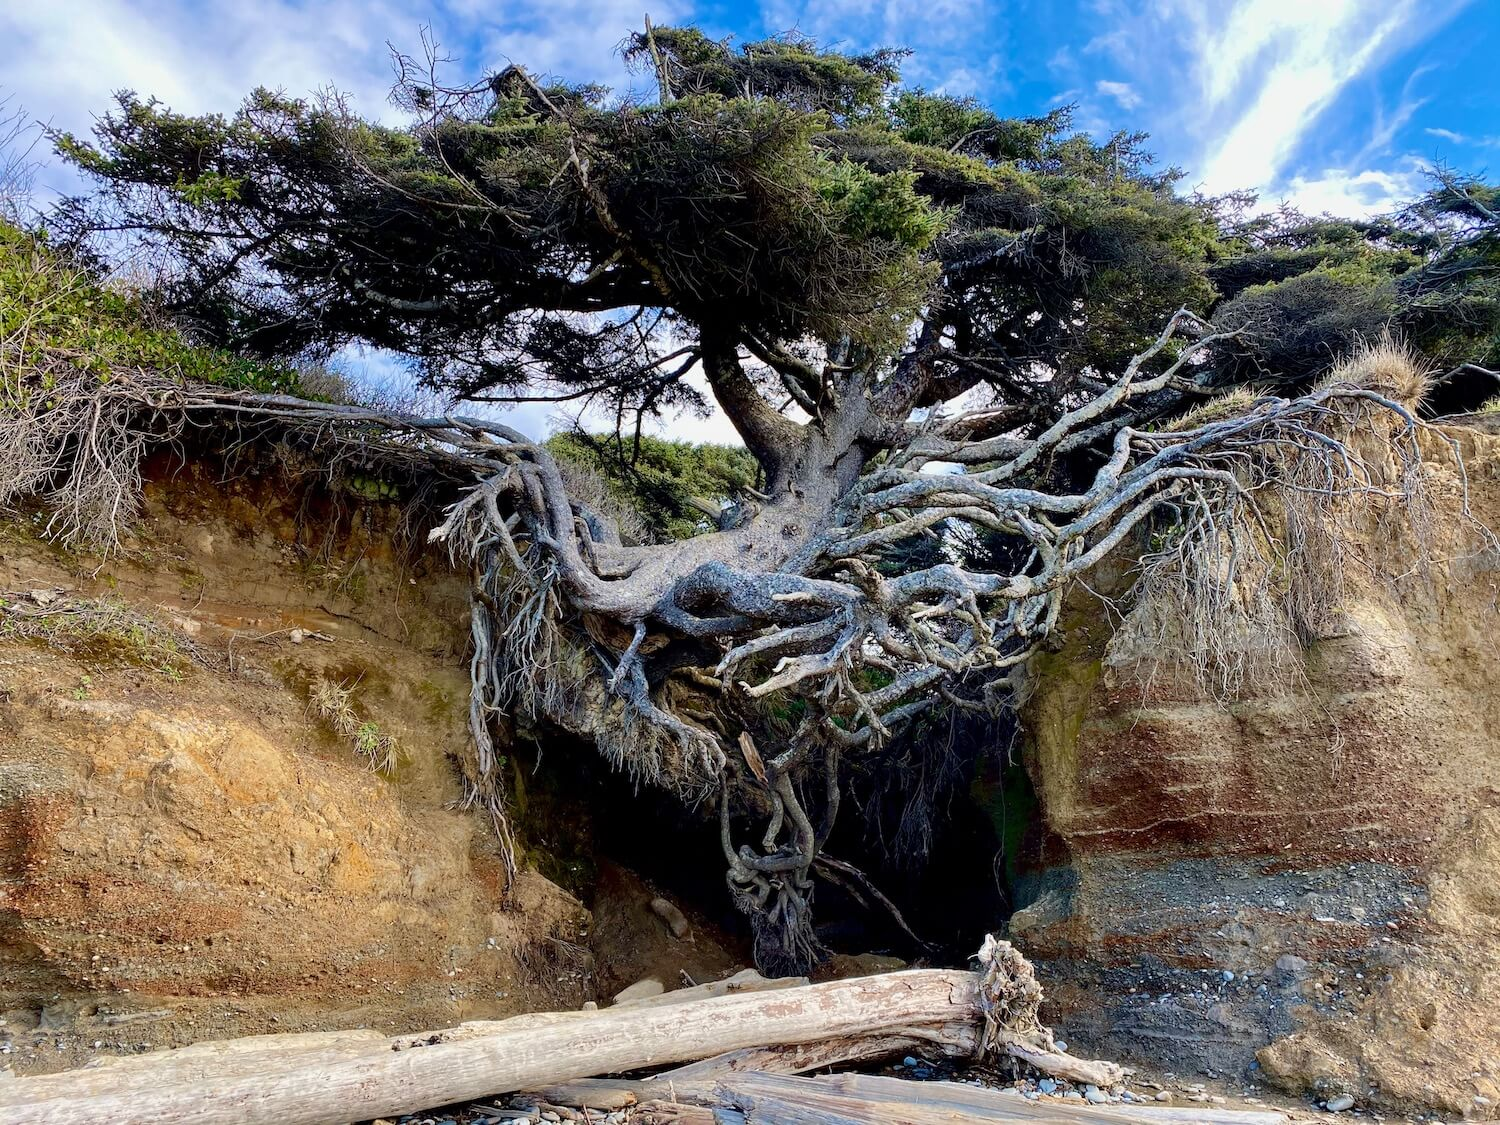 The tree of life straddles two sides of a beach side ravine with a cave like opening underneath. This part of the Washignton Coast has sand and drift logs and the sky a mix of blue and clouds.